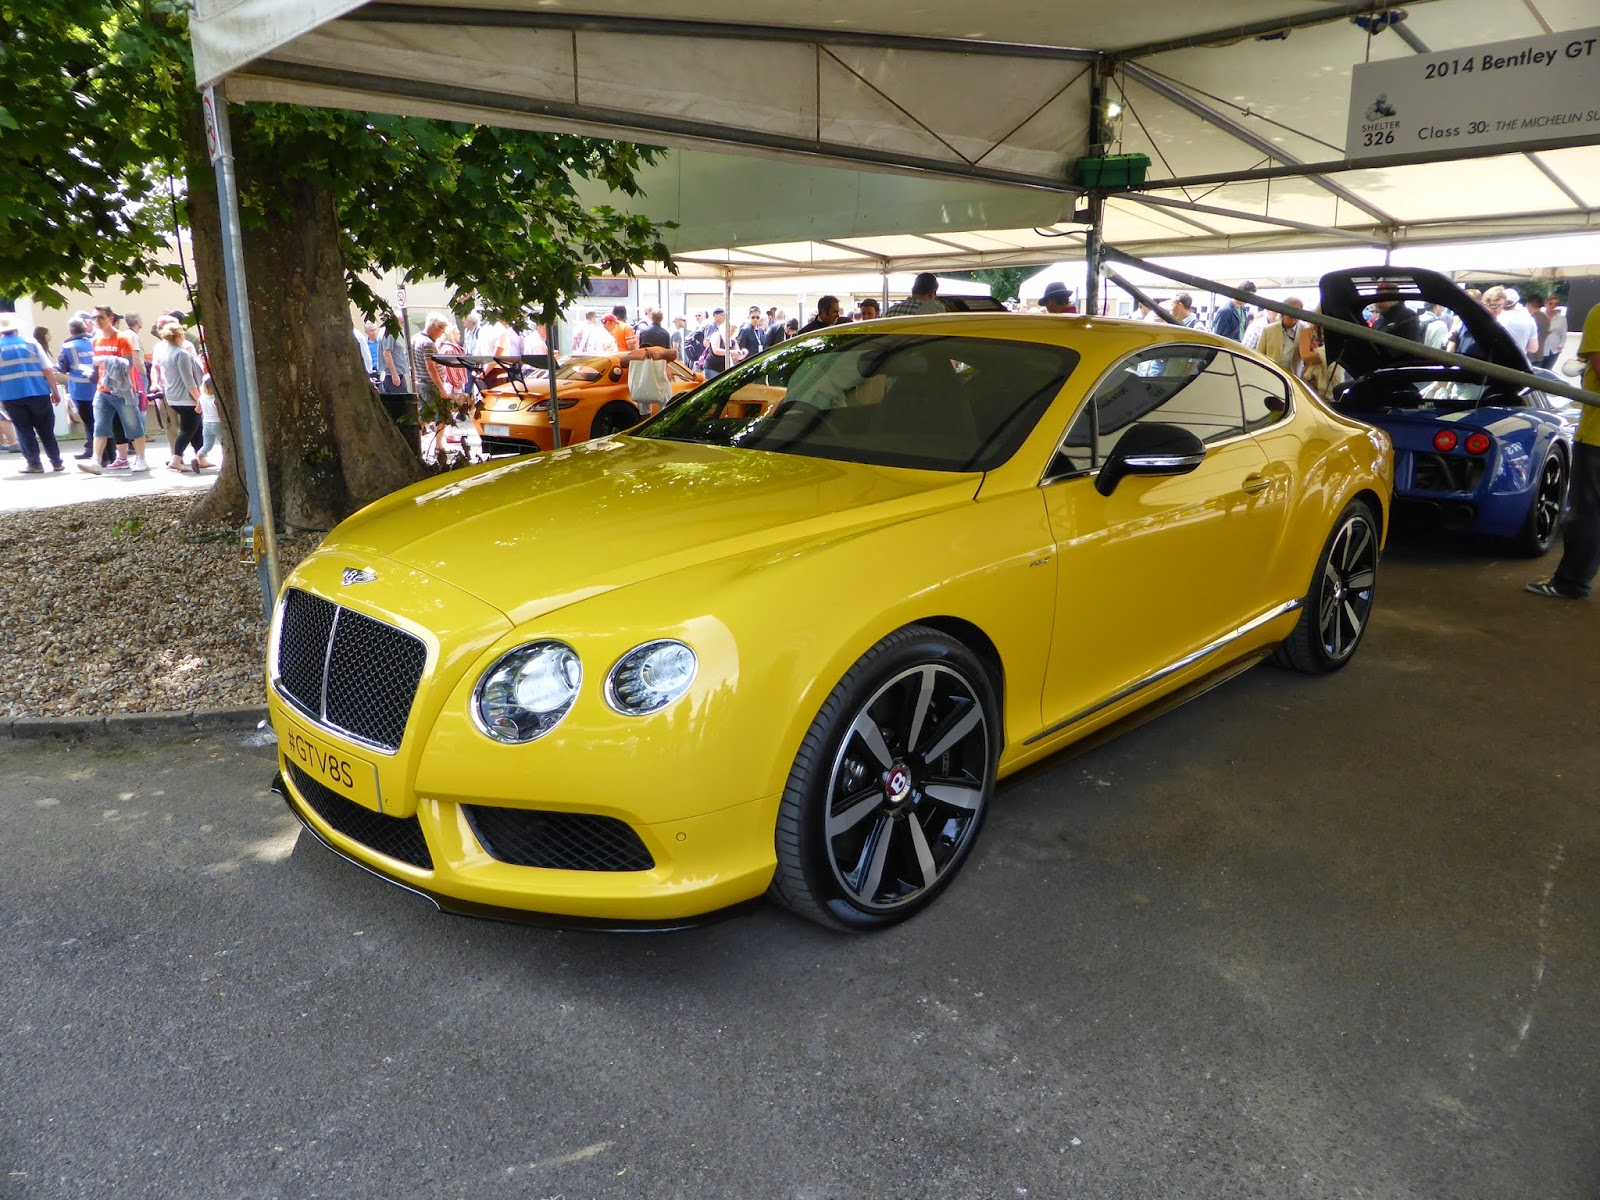 Bentley GT V8 S in the supercar paddock